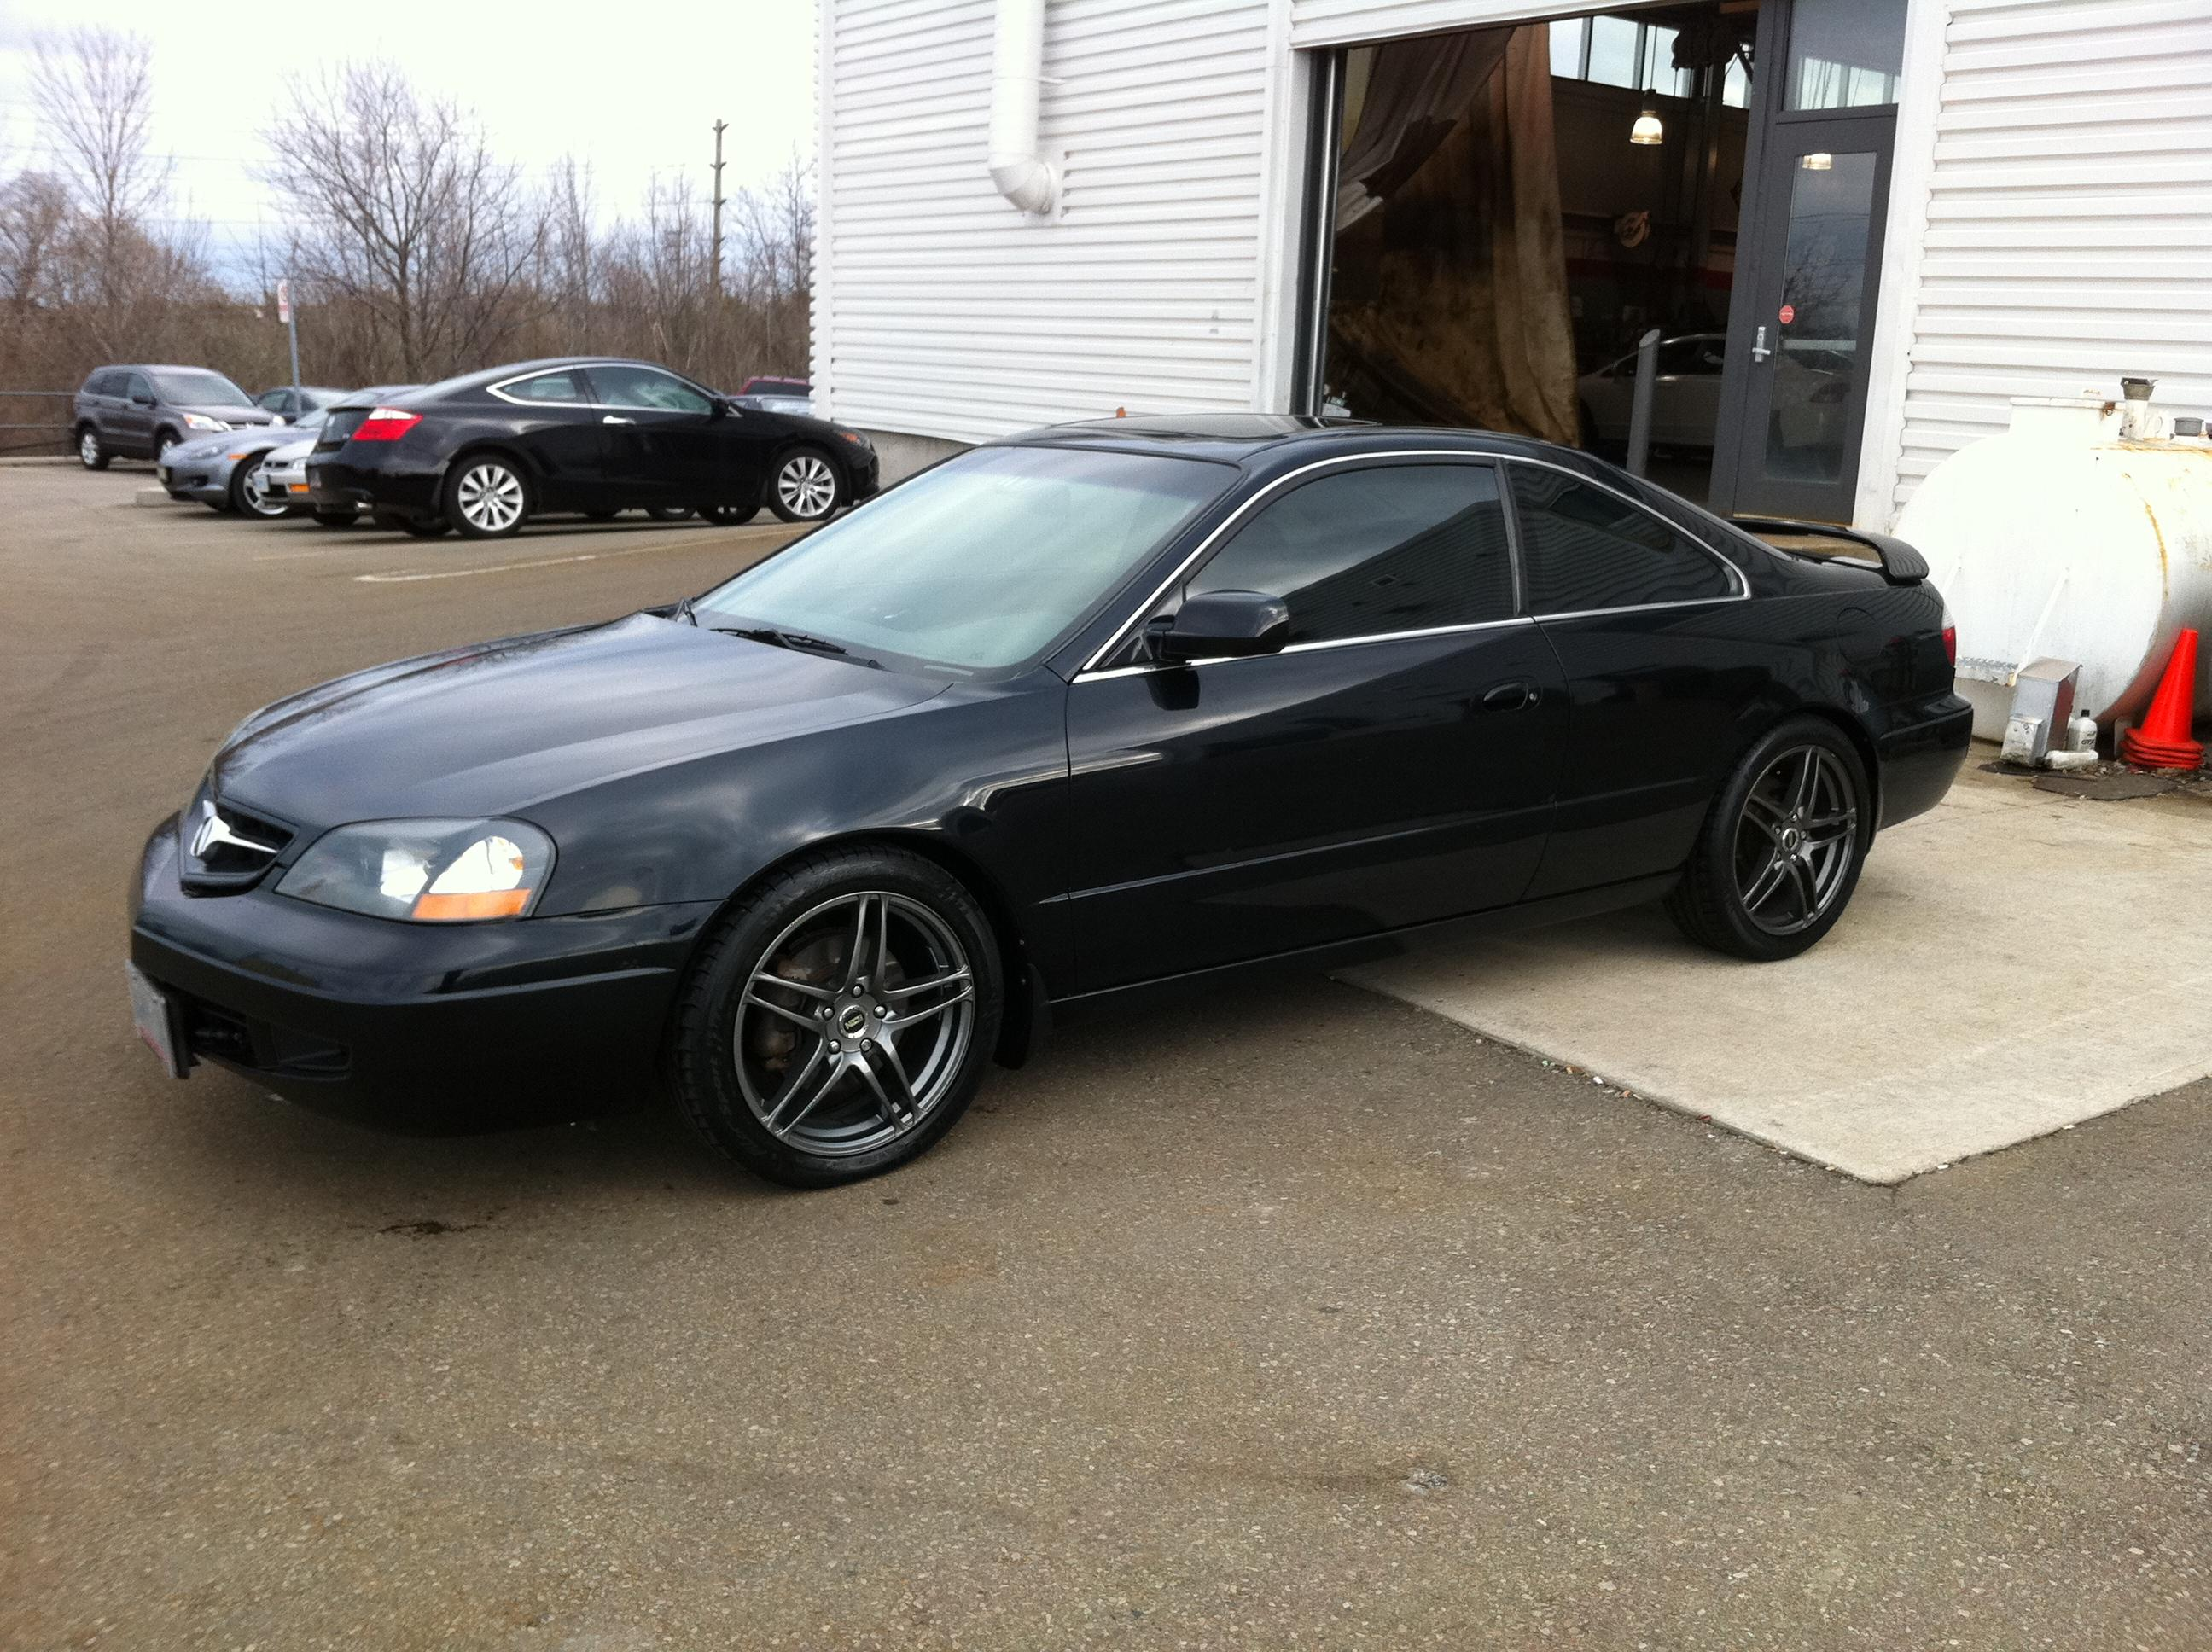 Hondatech600 2003 Acura Cltype S Coupe 2d Specs Photos Modification Info At Cardomain